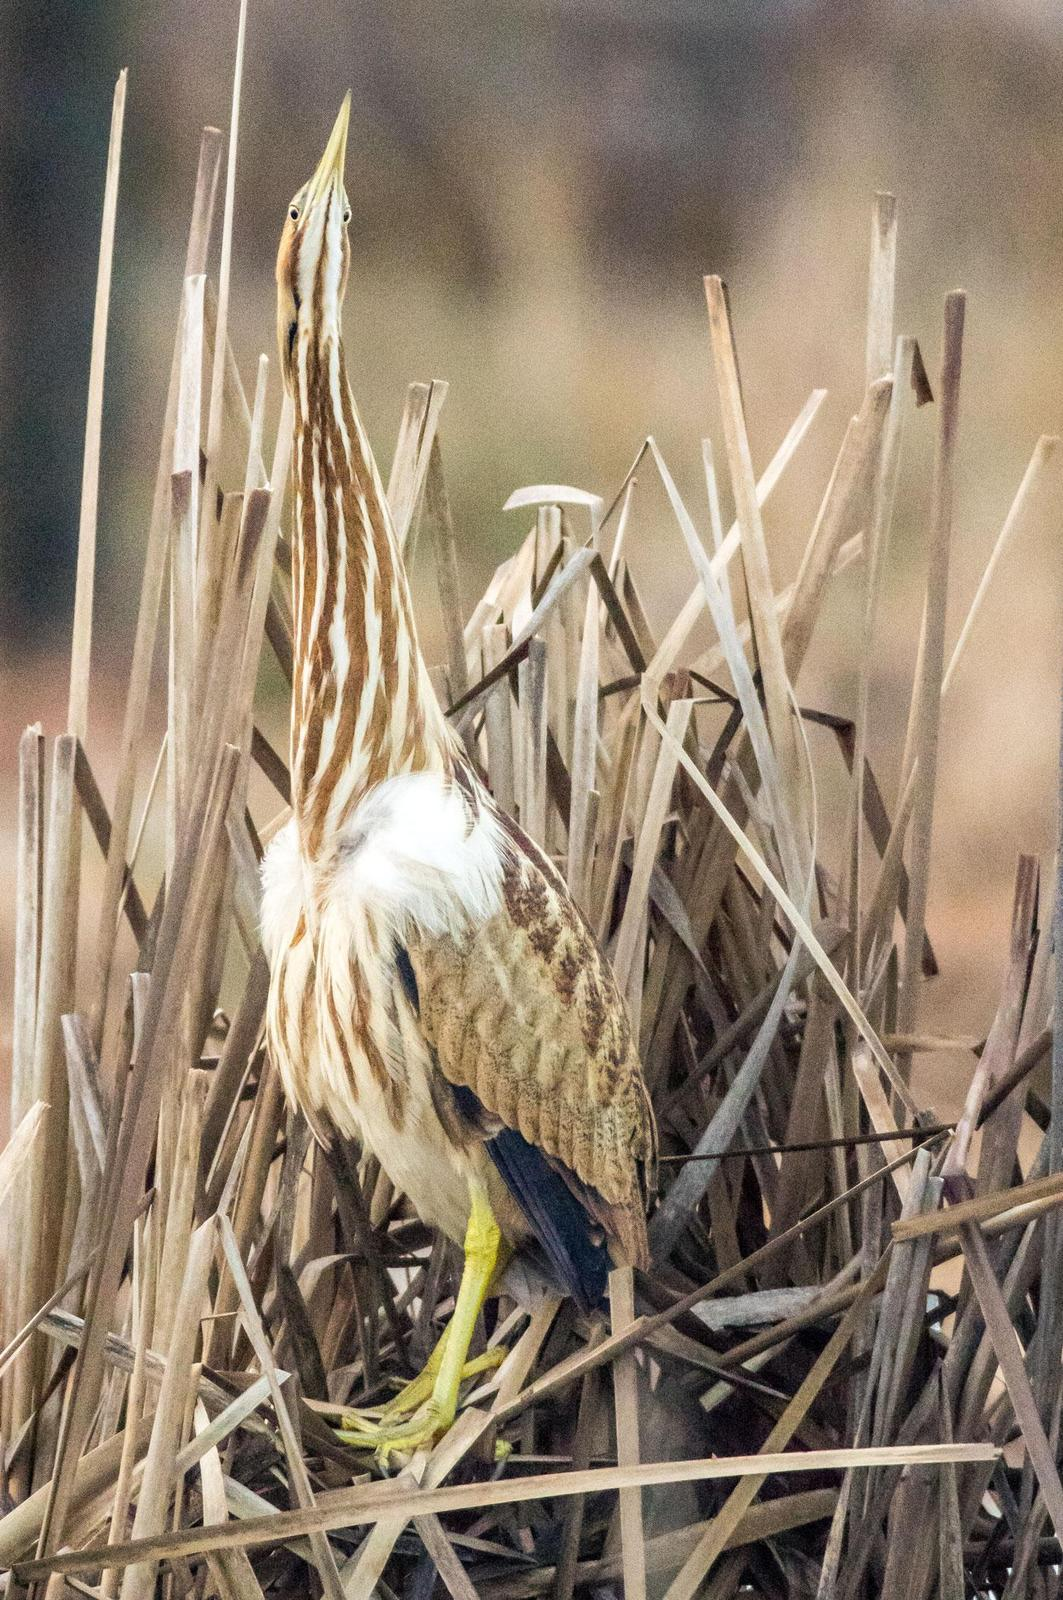 American Bittern Photo by Phil Kahler